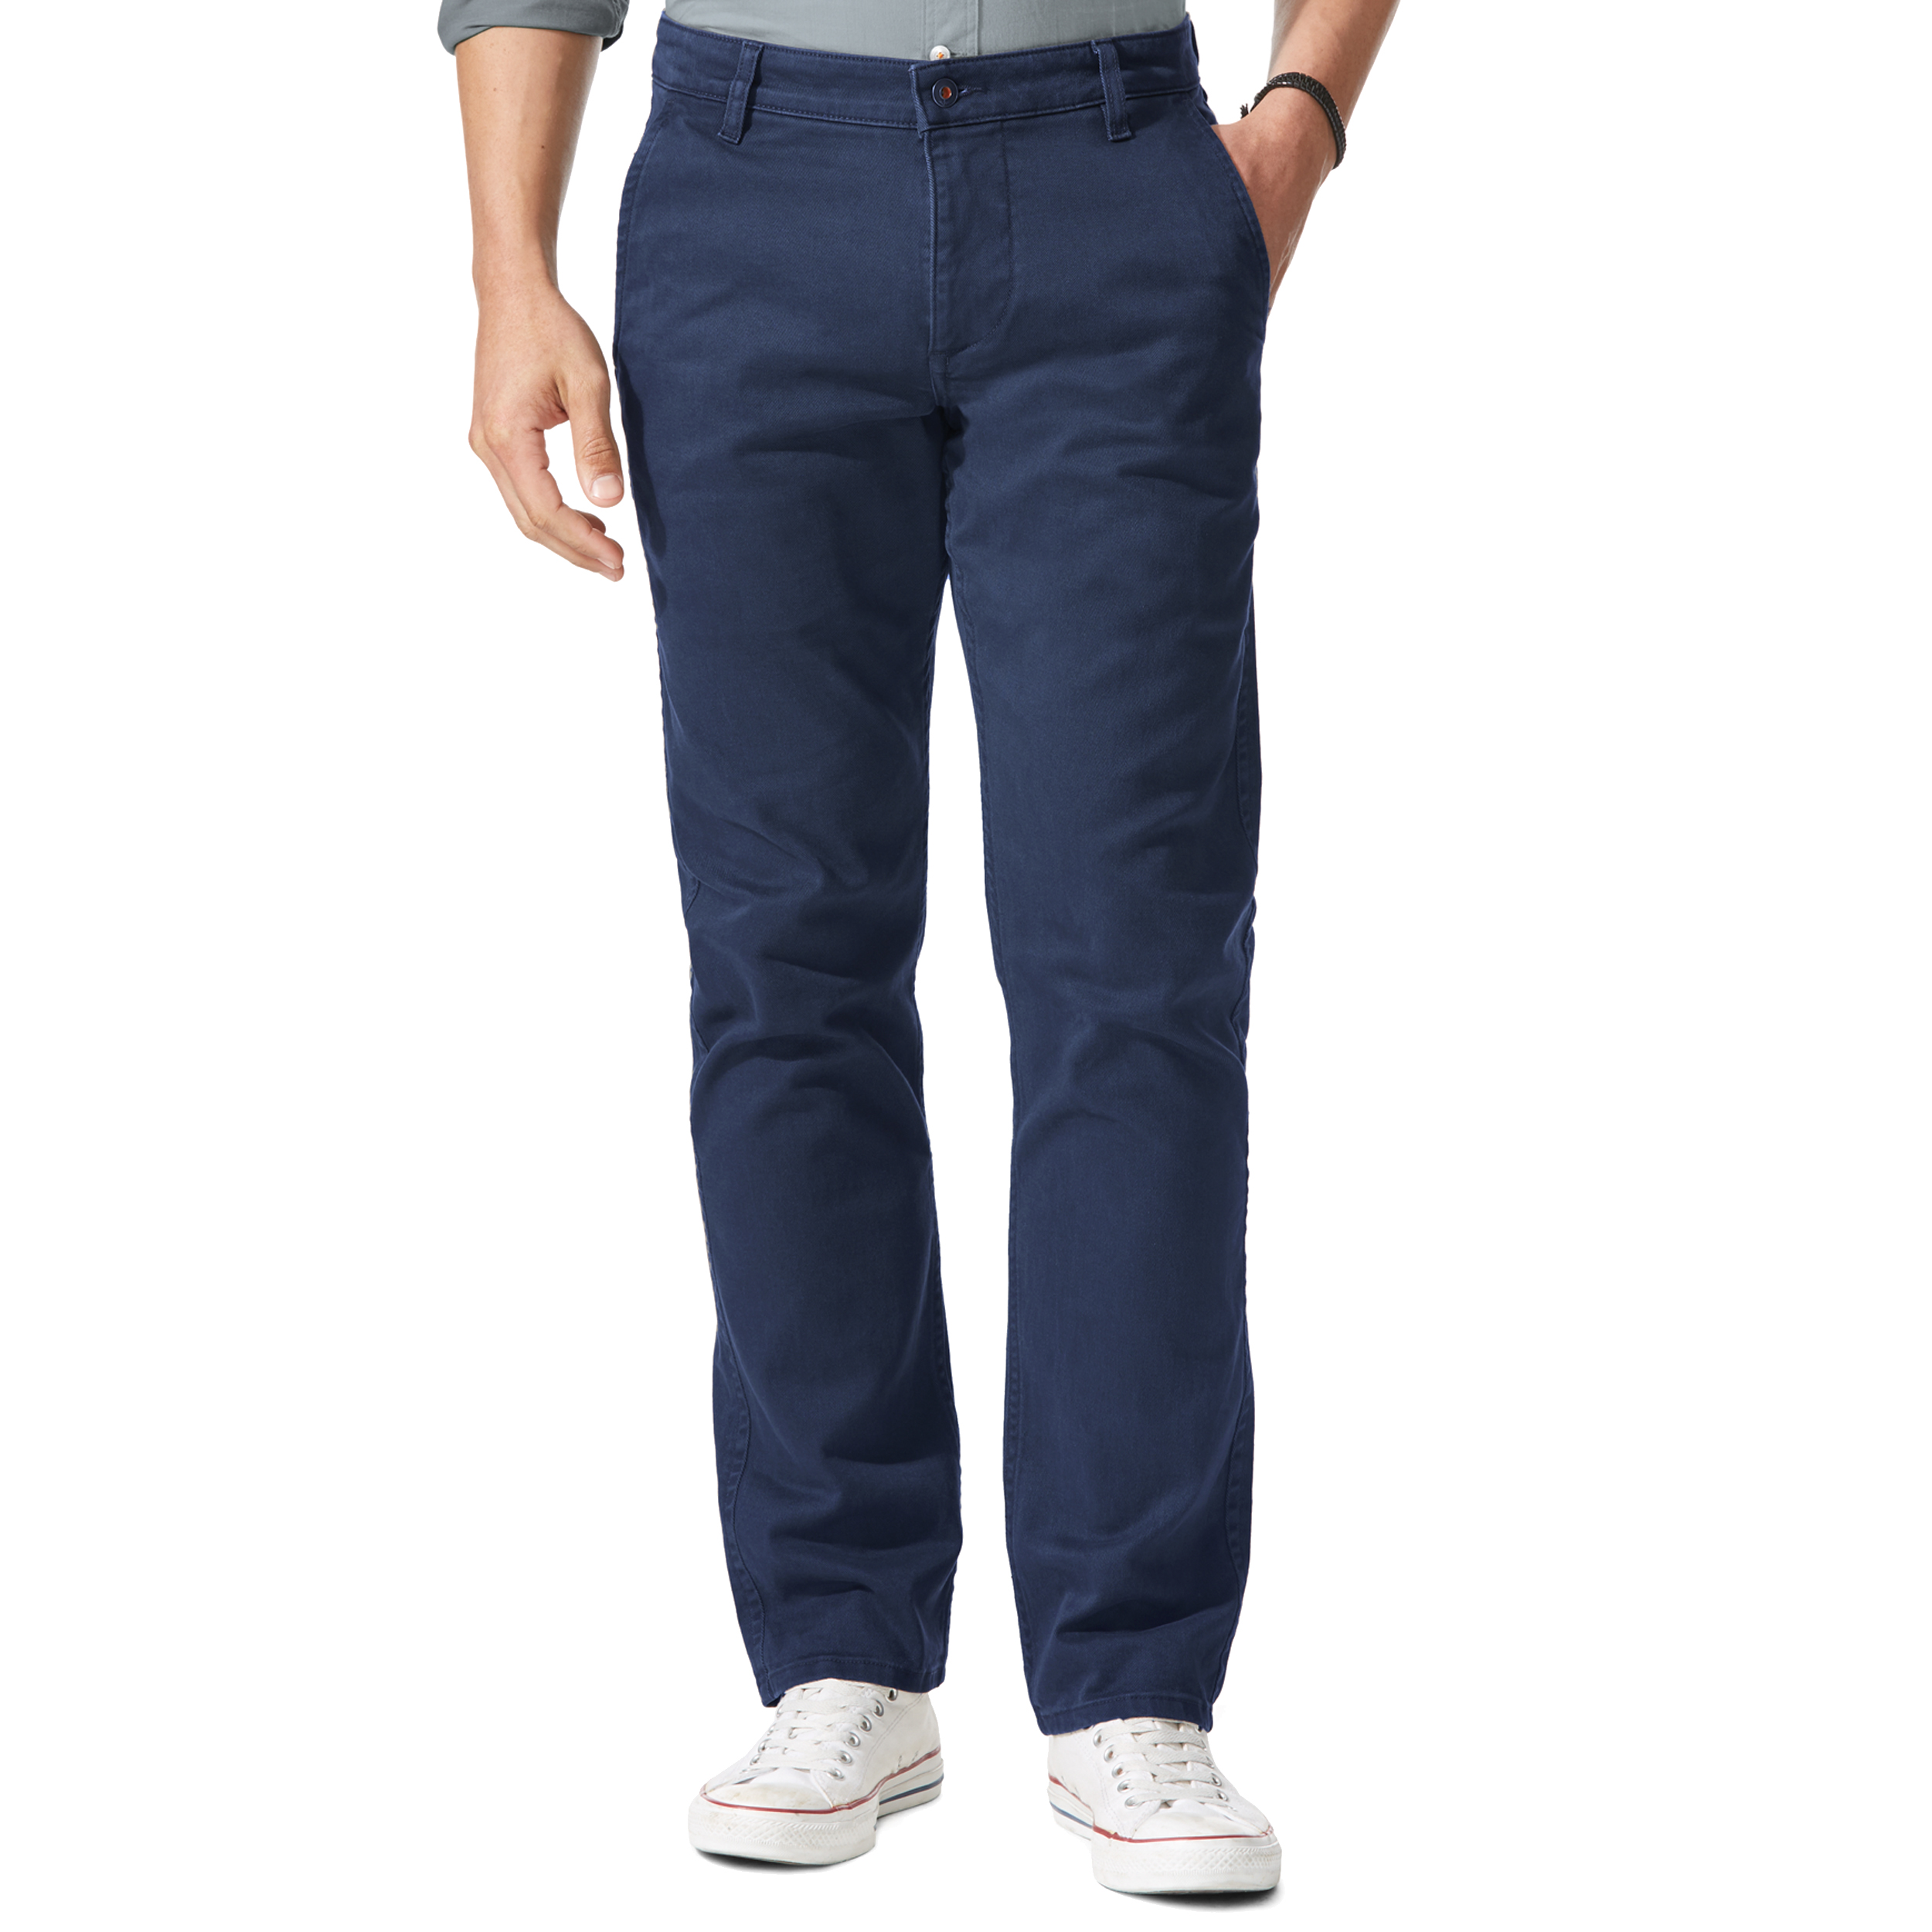 Pantalon alpha khaki original slim tapered  en twill bleu marine